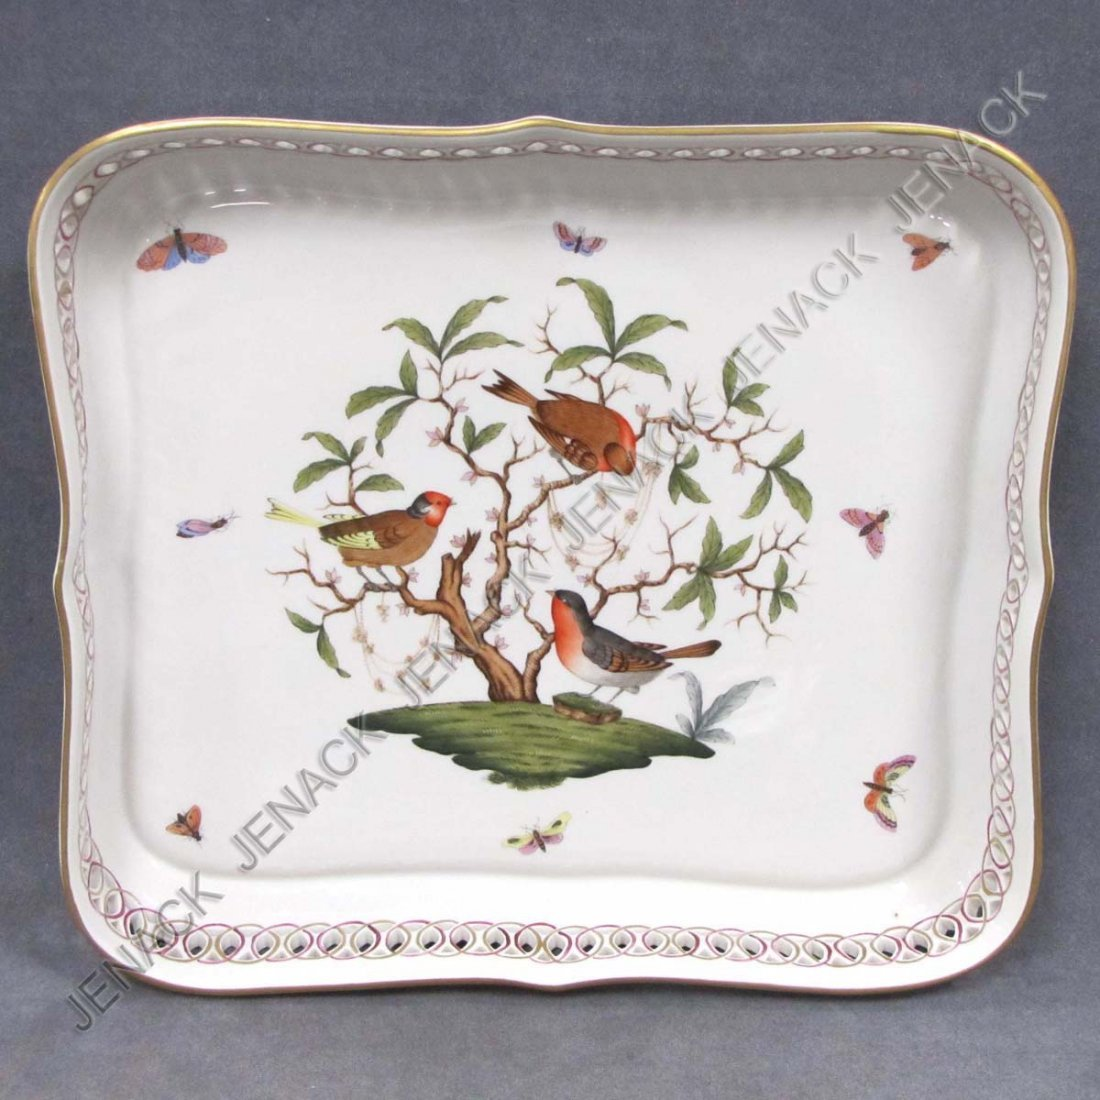 "230: HEREND ""ROTHCHILD BIRD"" DECORATED PORCELAIN TRAY"